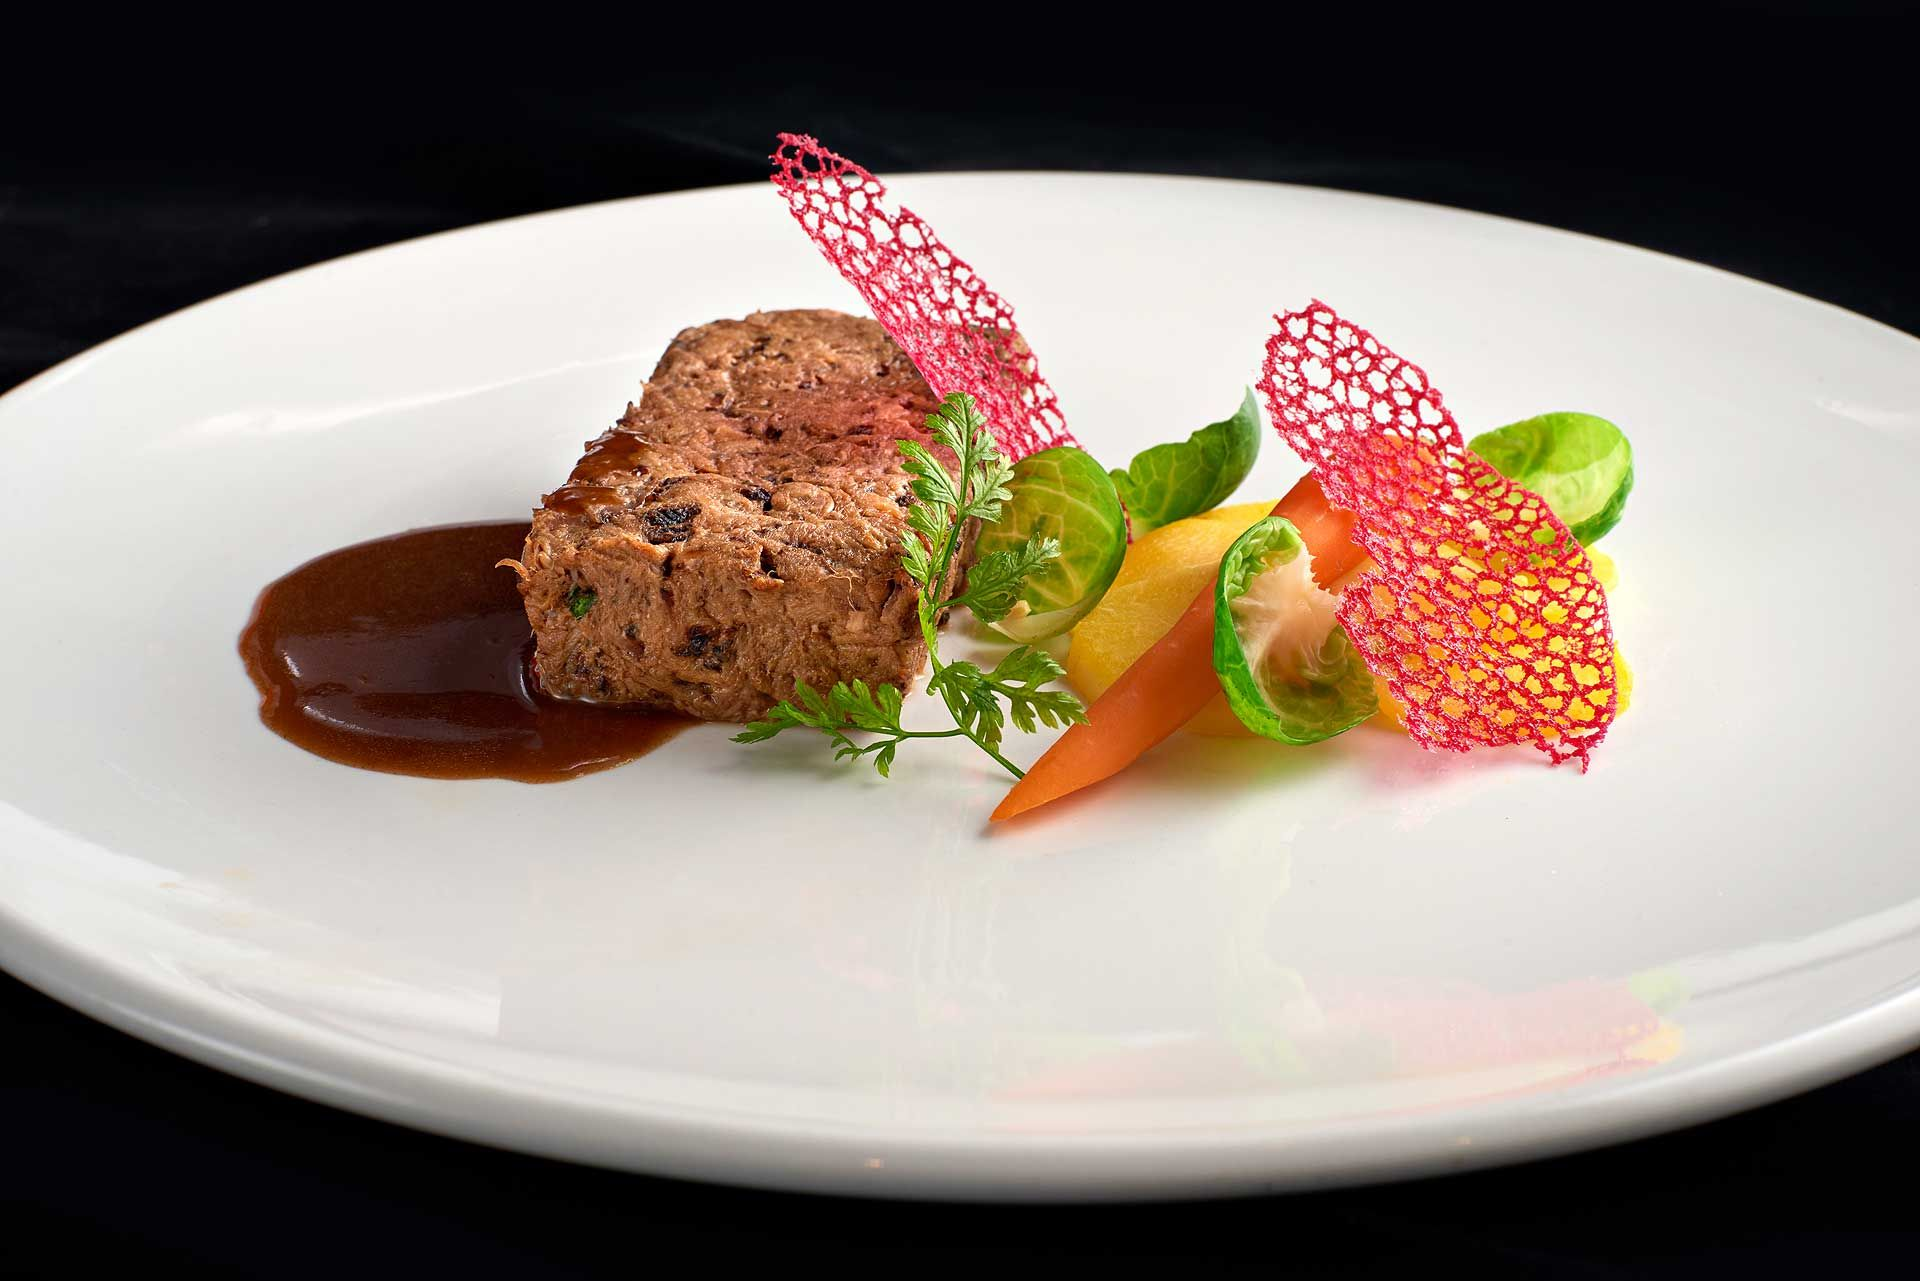 """14 Restaurants To Experience The """"World's Greatest French Dinner"""" In KL This Month"""